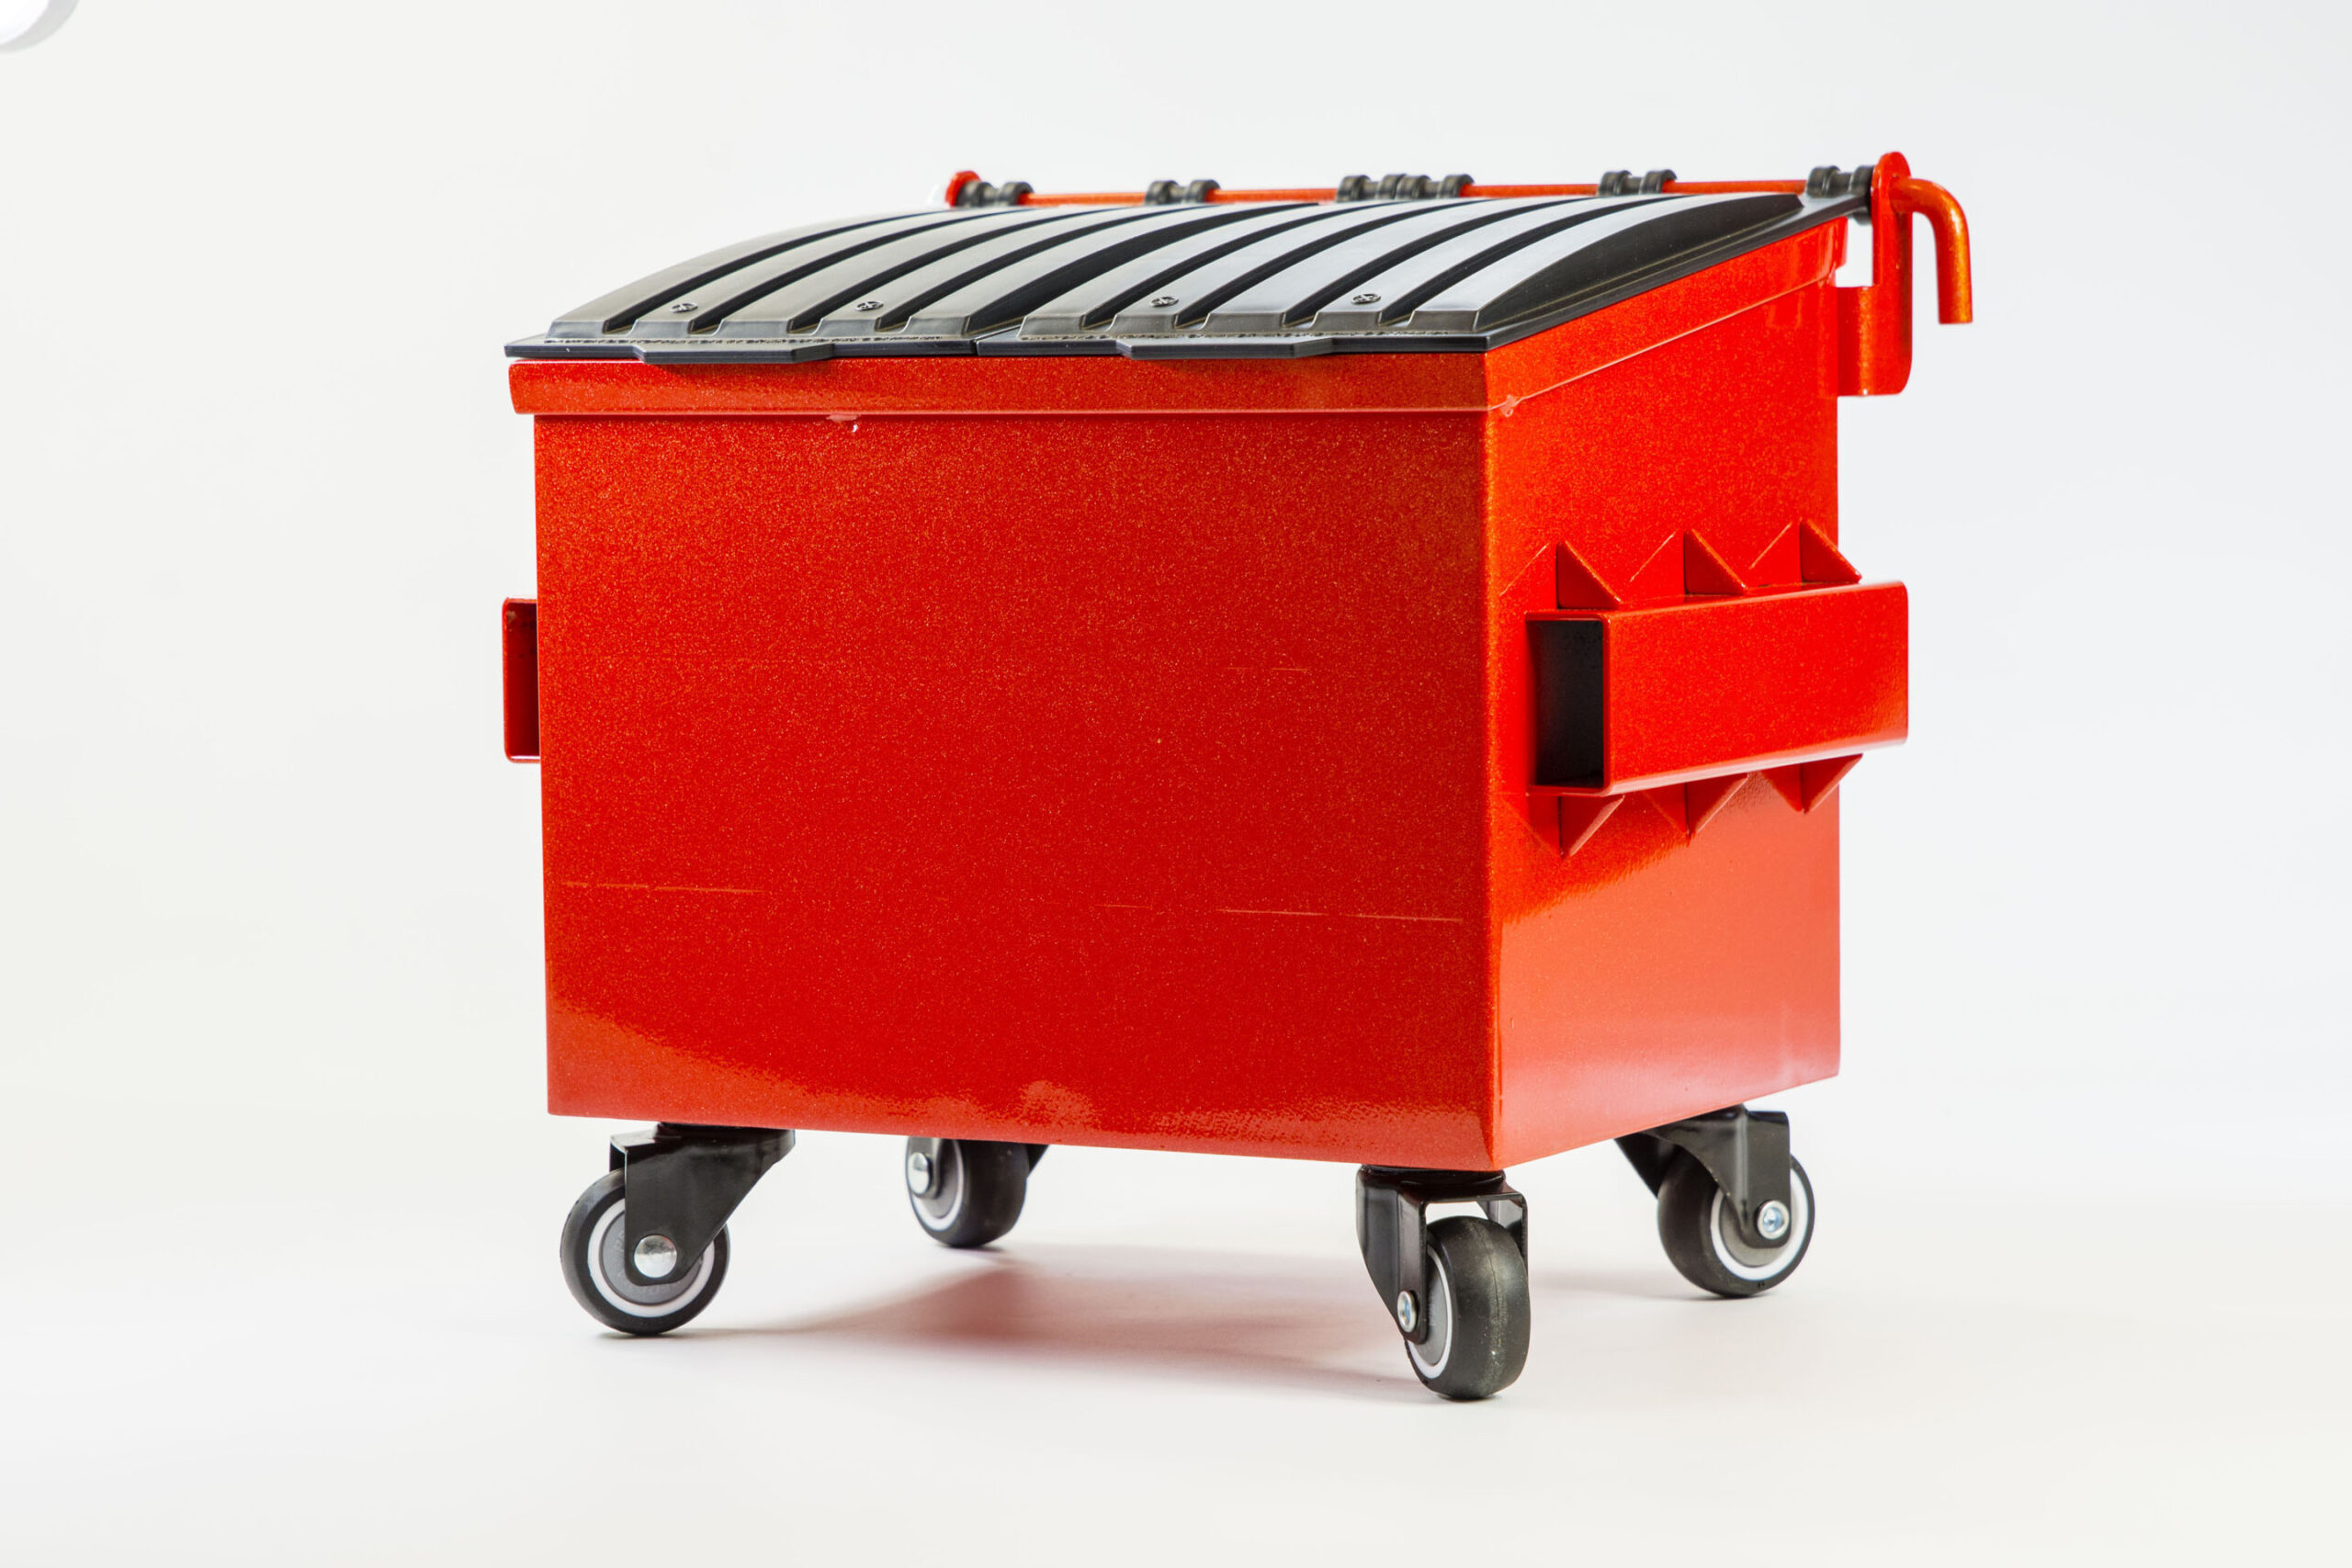 image of a small metal dumpster called dumpsty